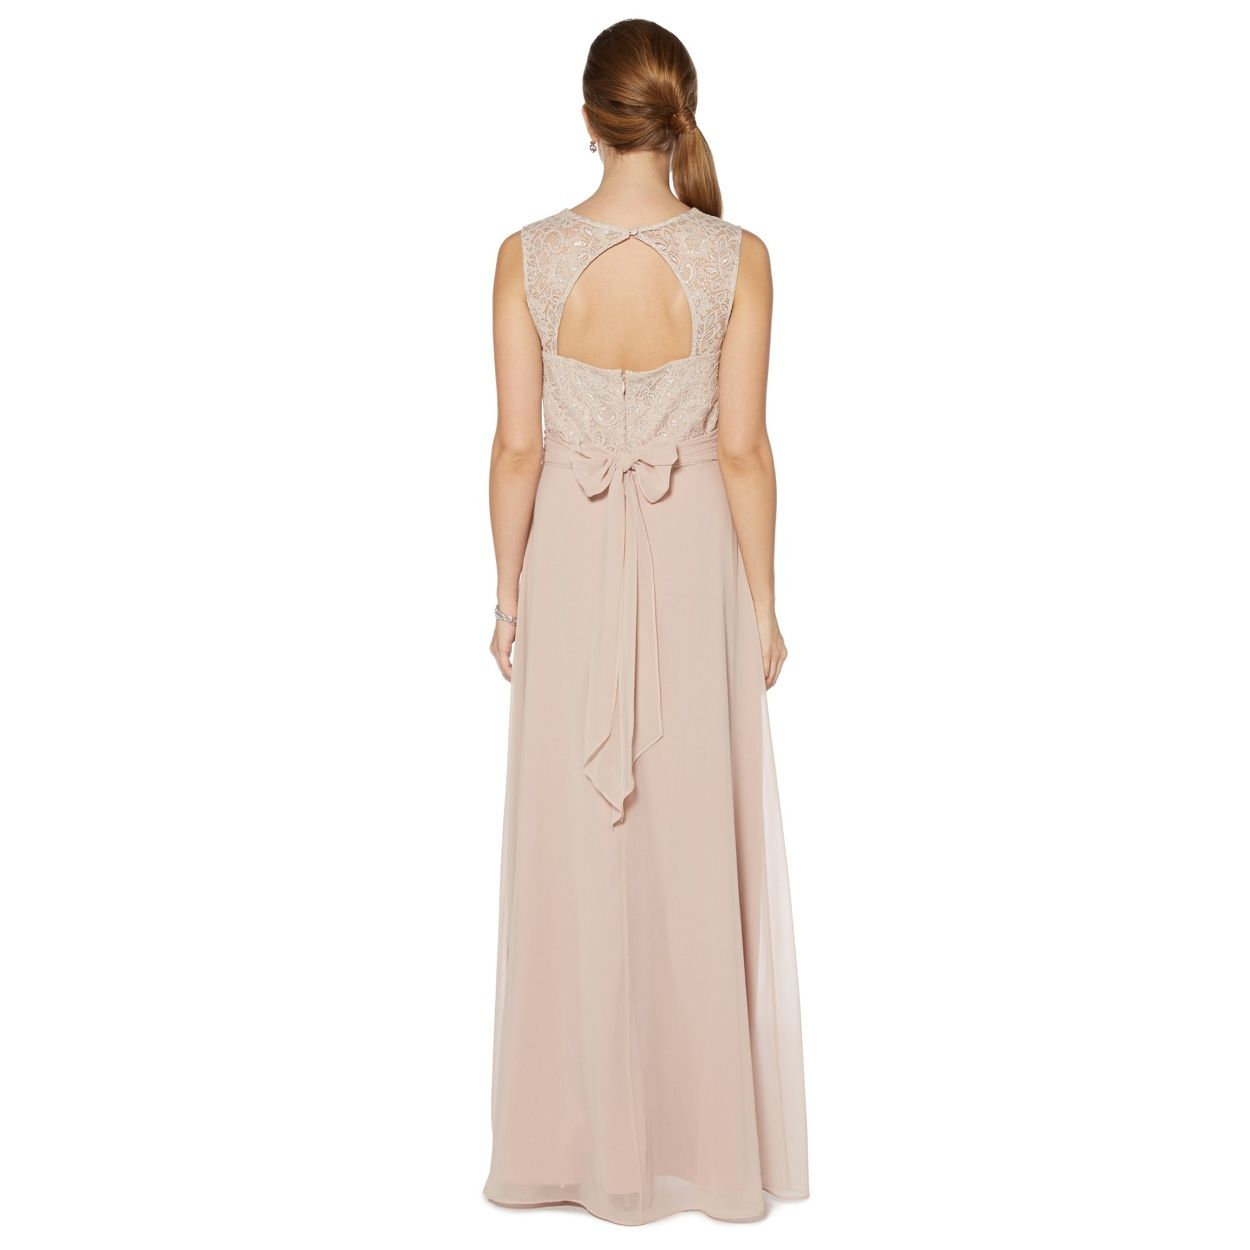 Debut gold lace maxi dress at debenhams bridesmaid dresses debut gold lace maxi dress at debenhams ombrellifo Image collections